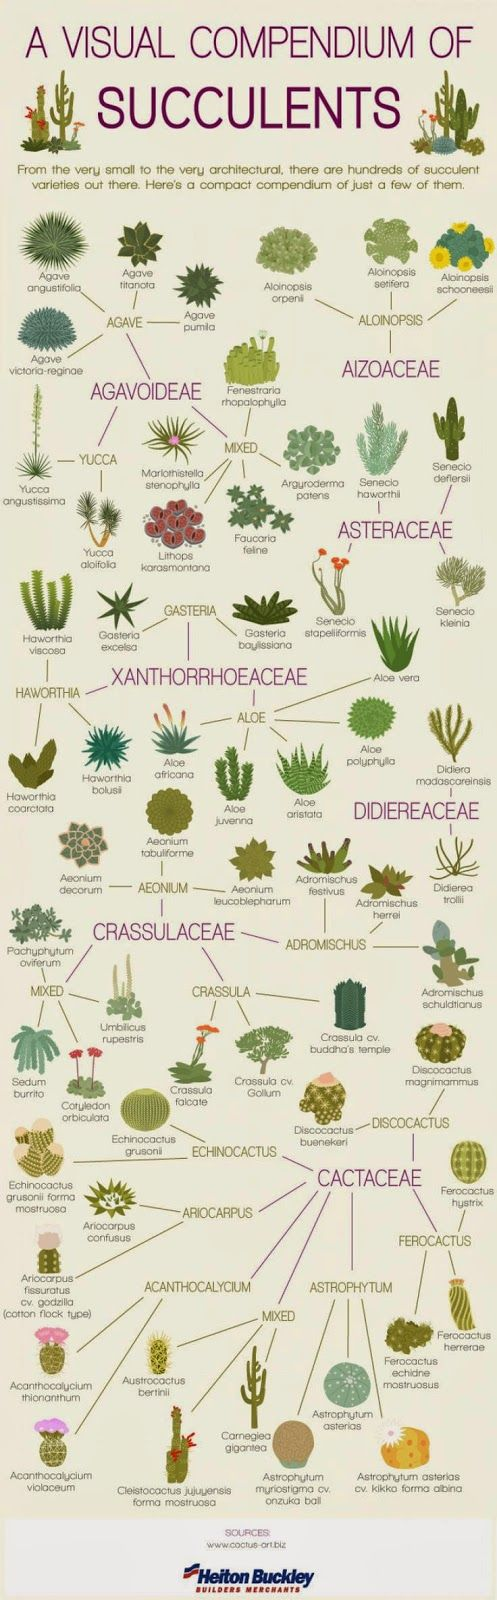 A Visual Compendium of Succulents by frommoontomoon #Infographic #Succulents